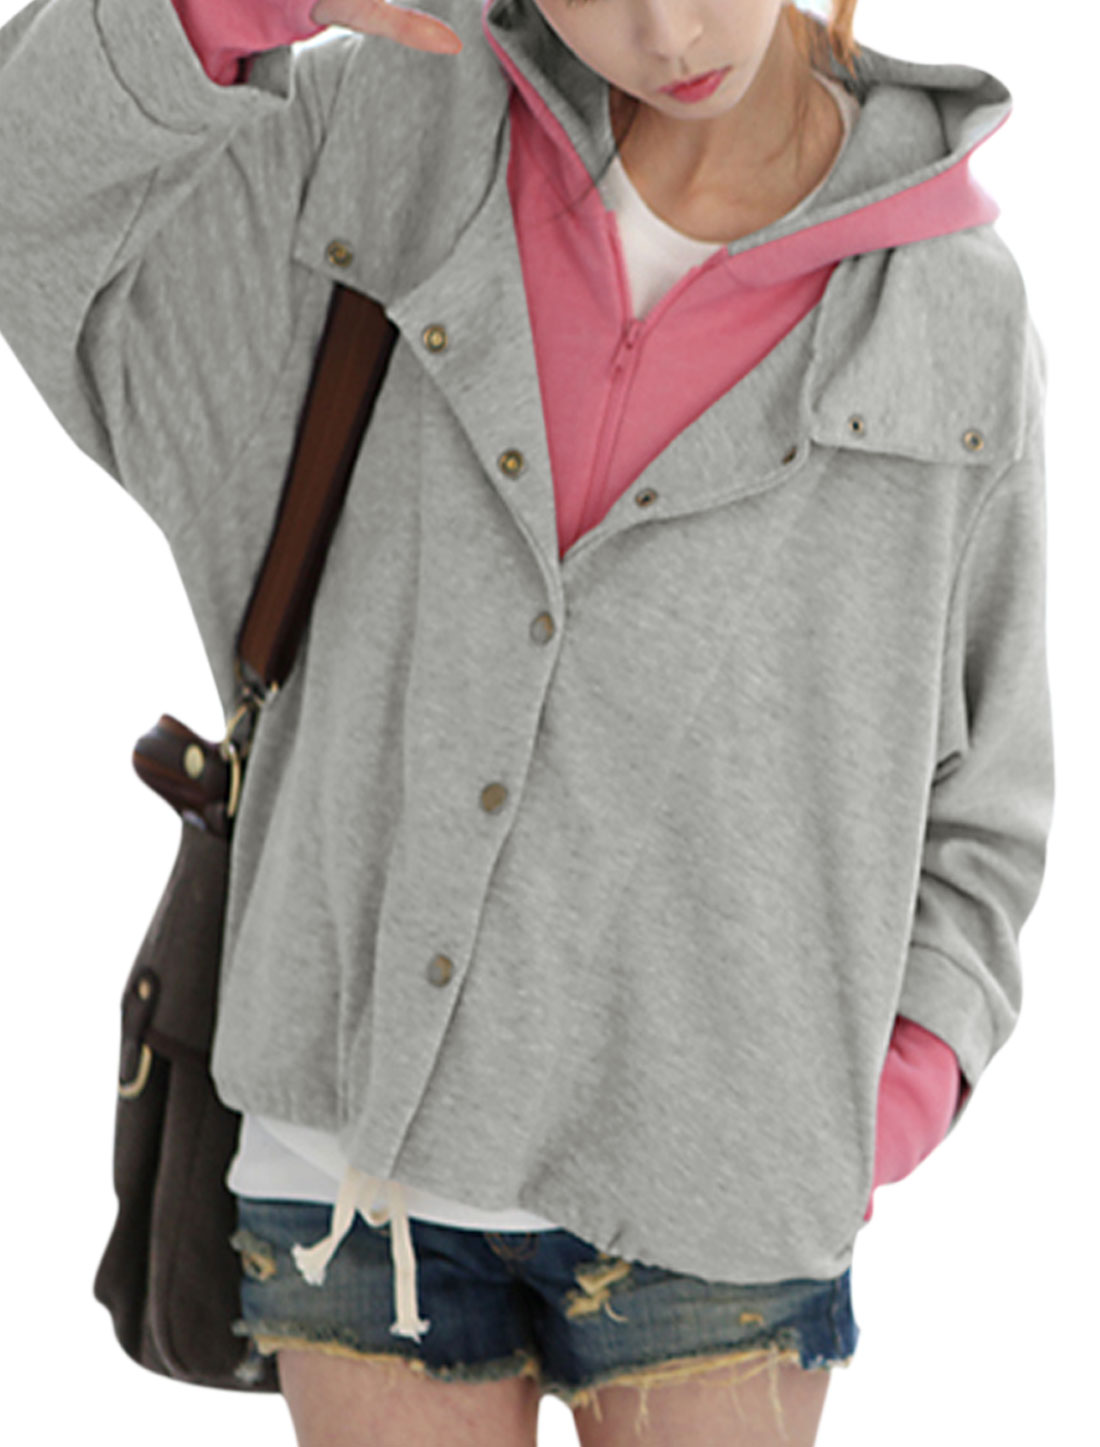 Lady Layered Design Long Sleeves Two Pockets Hooded Jacket Light Gray Pink XS